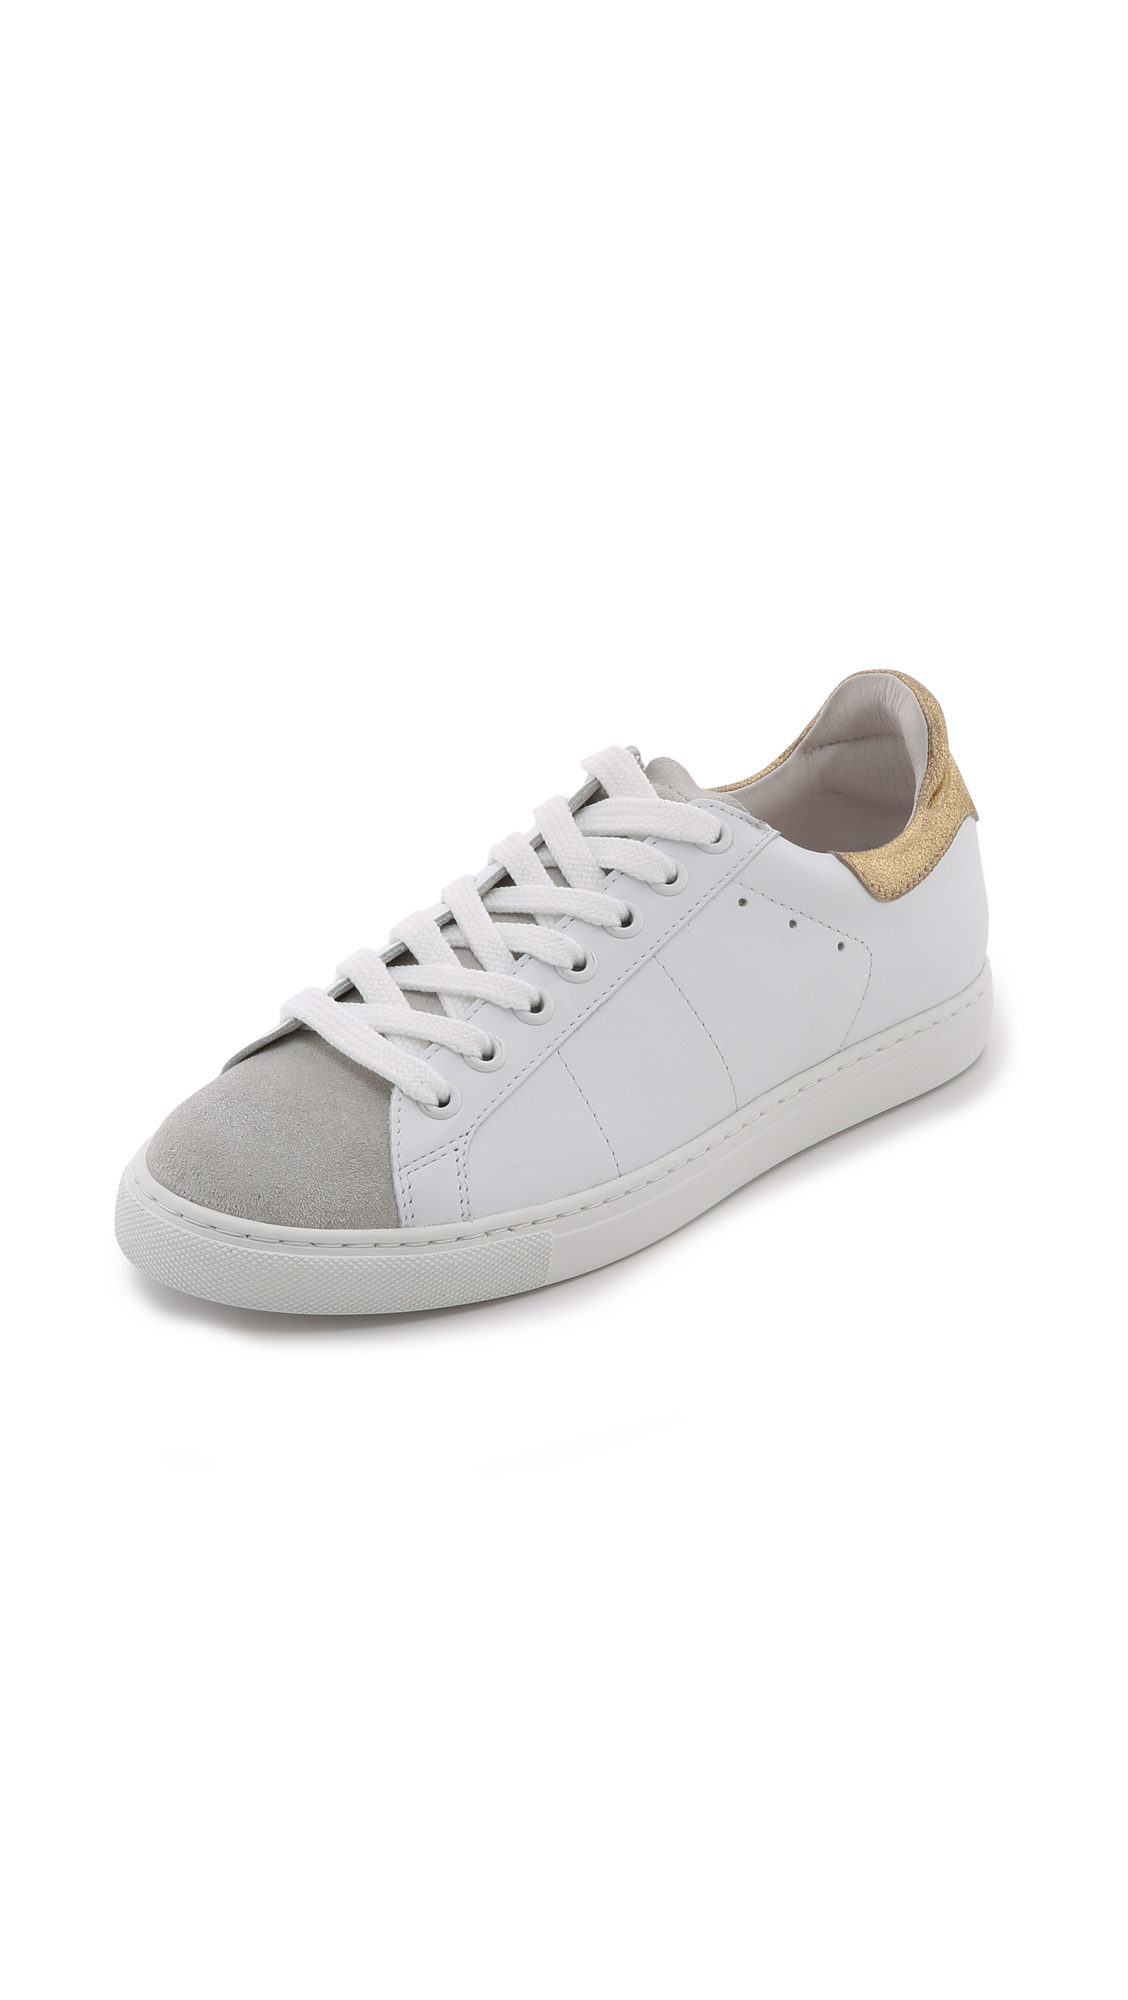 Iro Woman Textured-leather Sneakers White Size 40 Iro b8ZWBsw